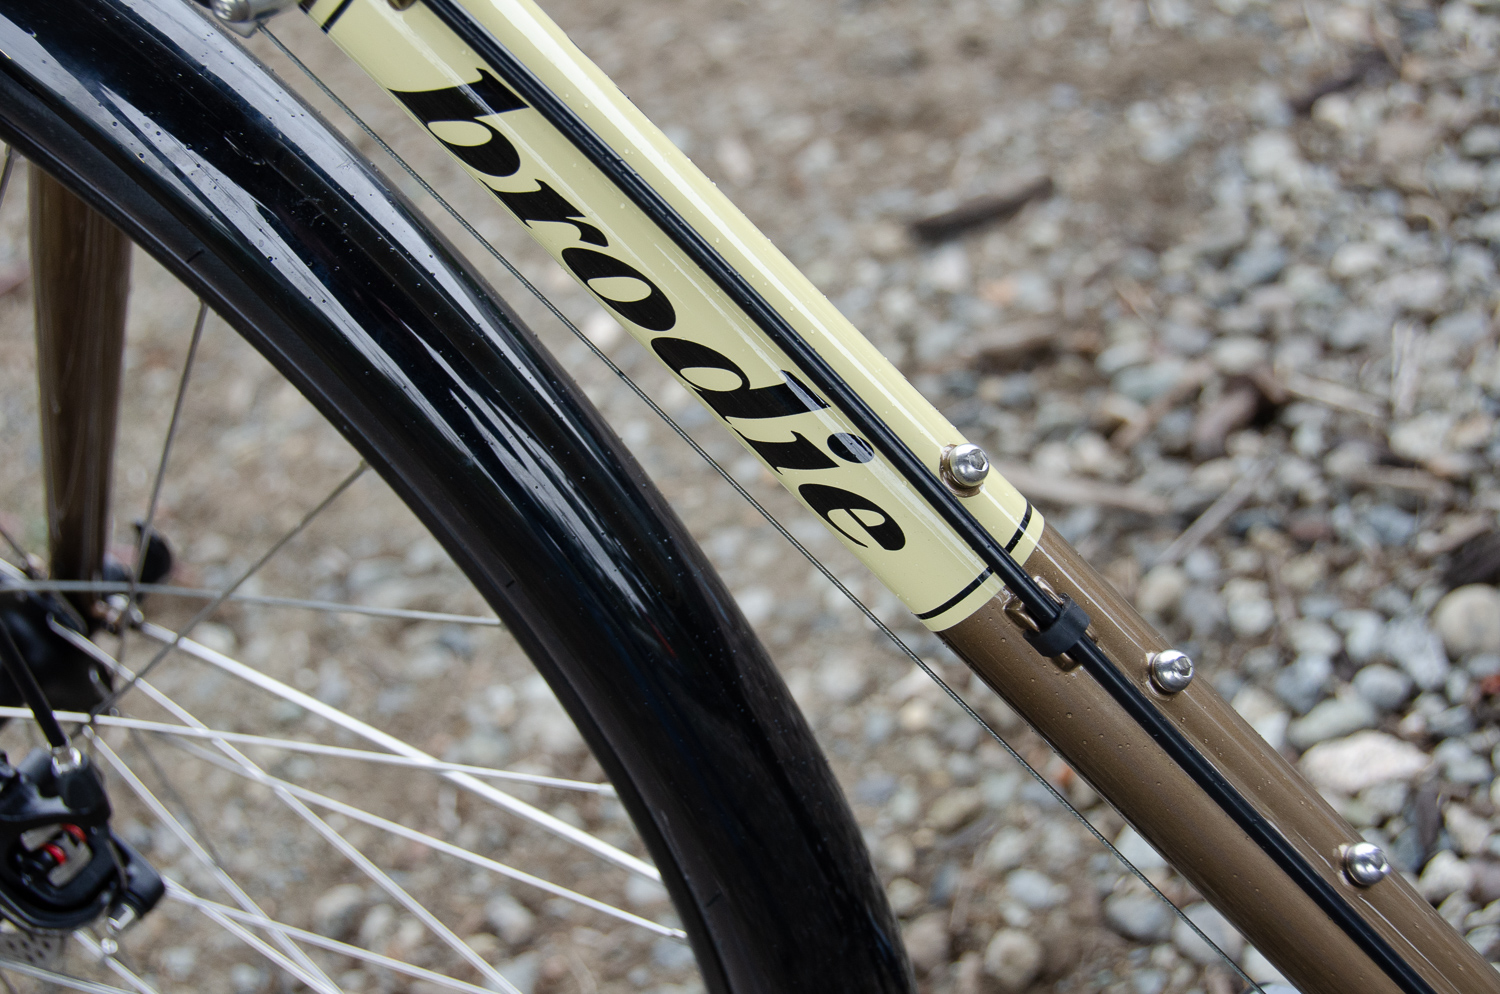 Elan downtube and fender.jpg